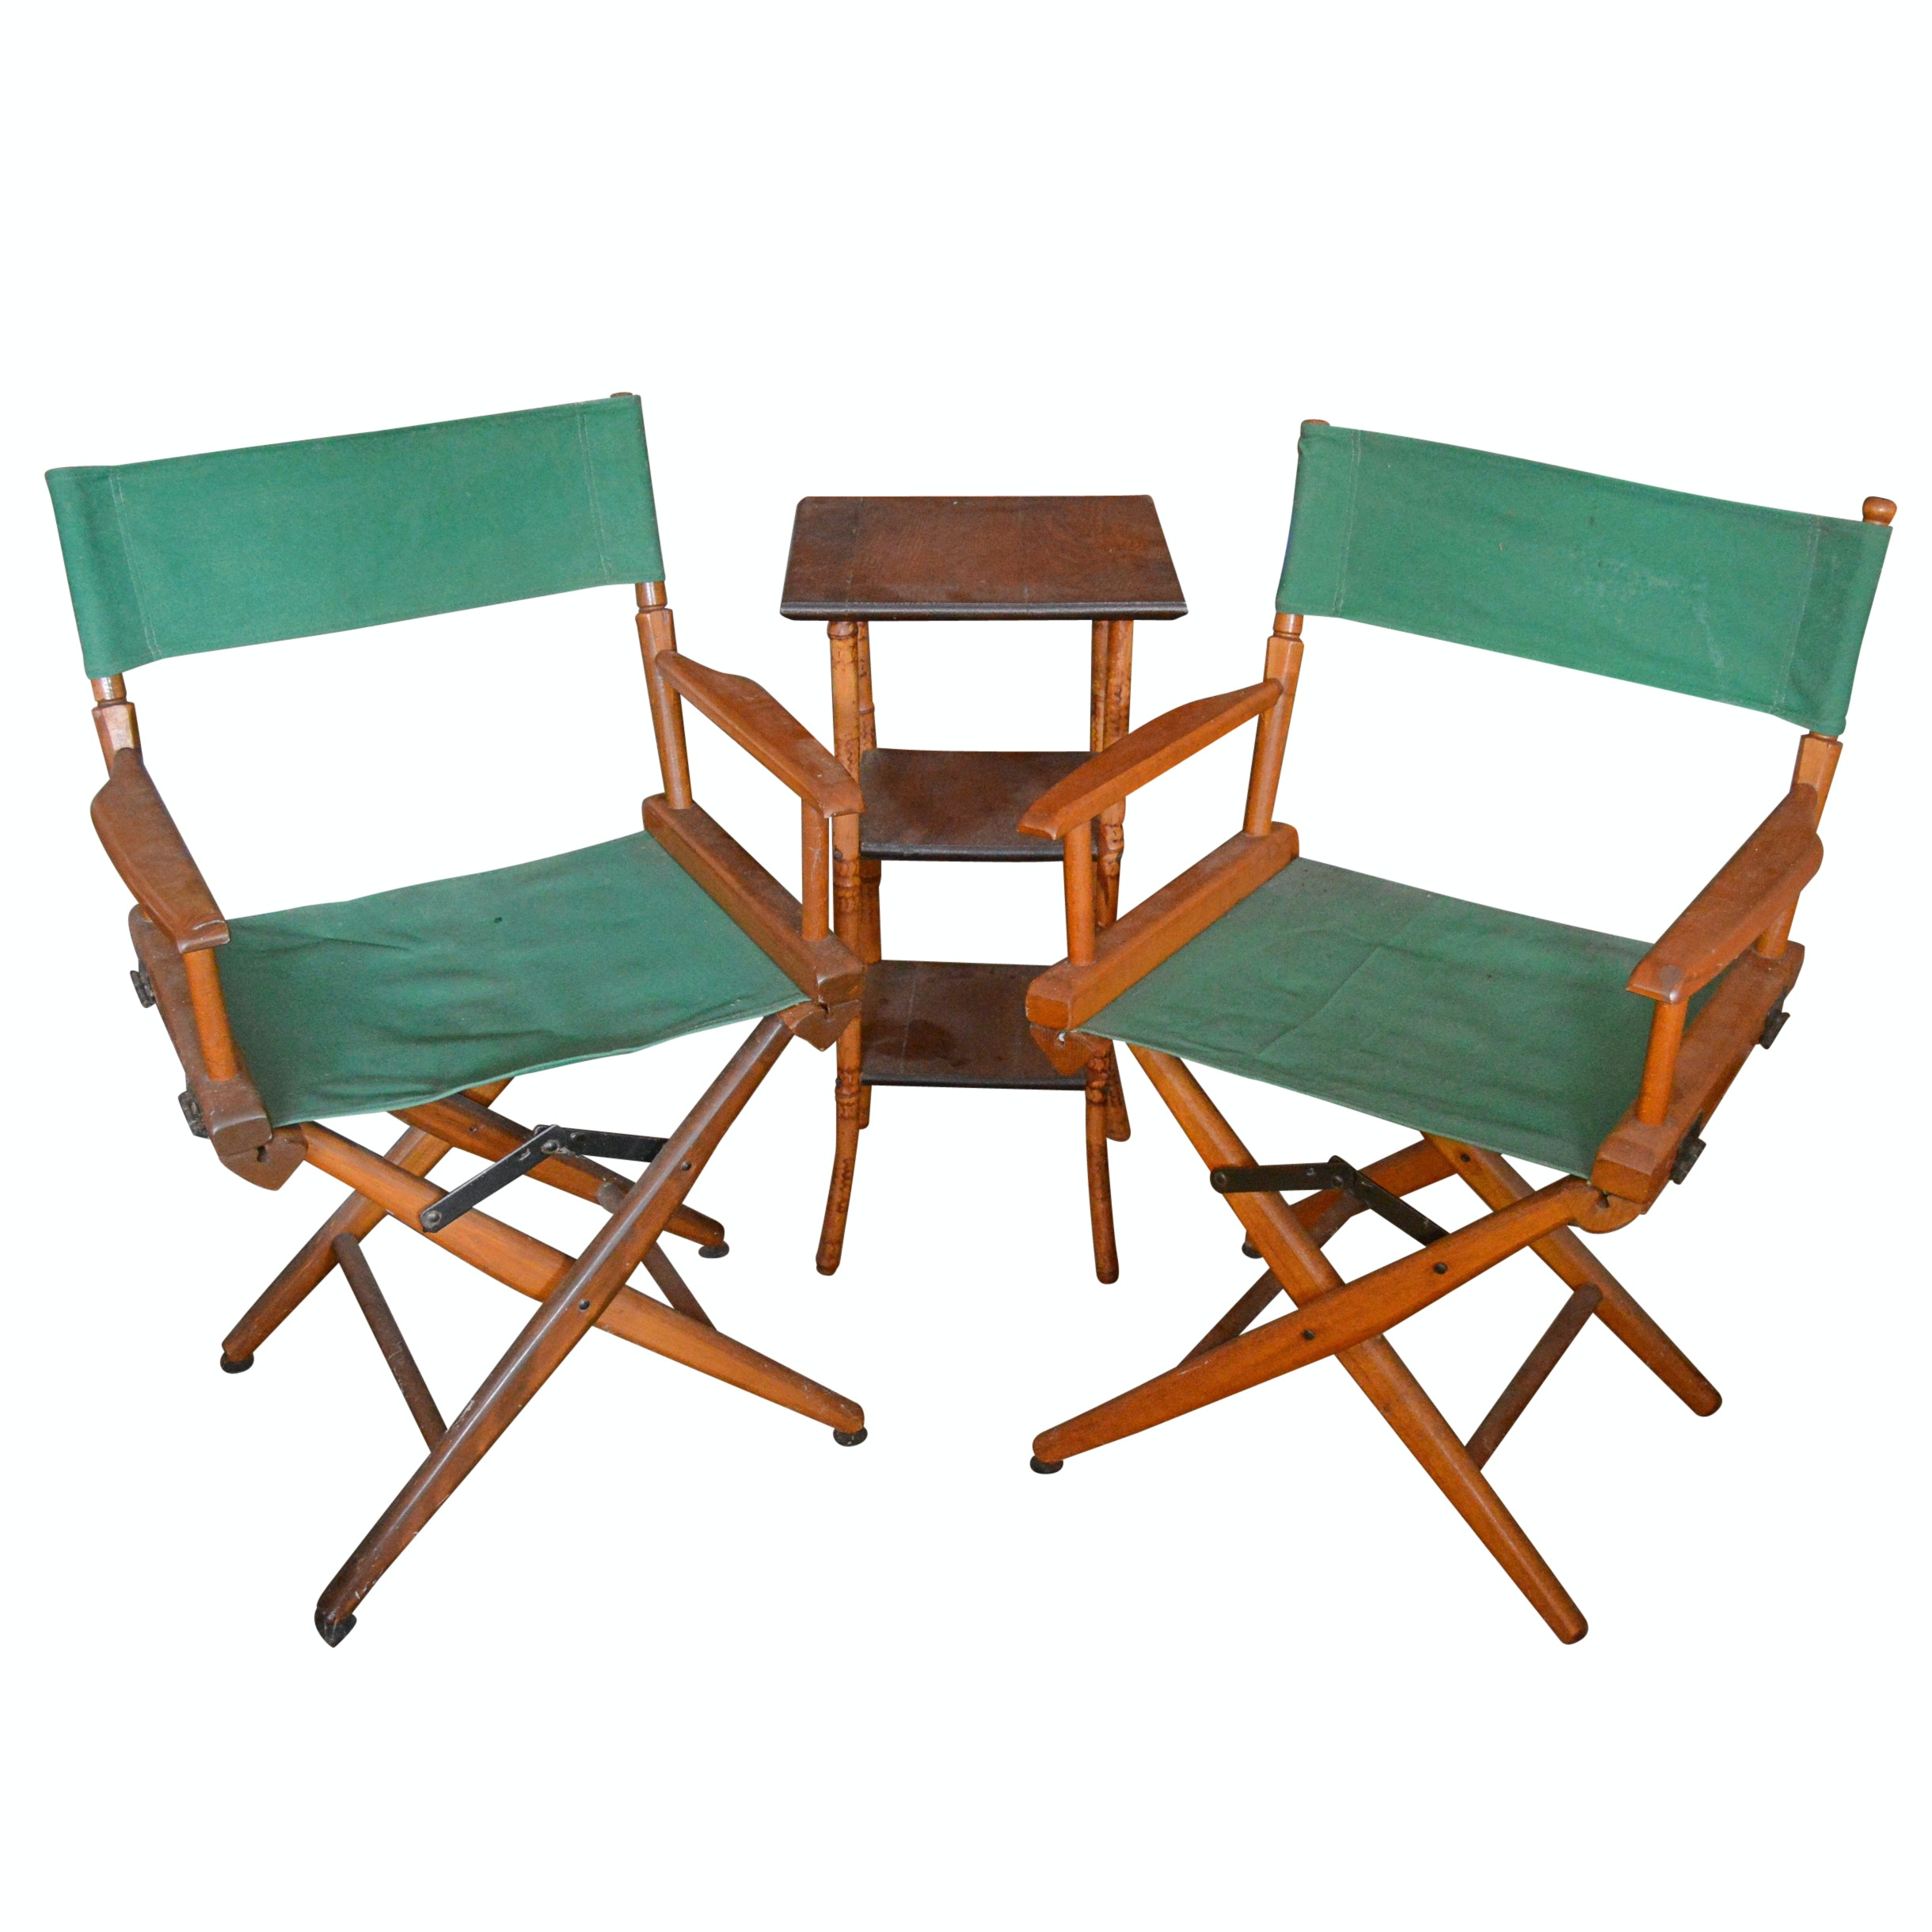 Pair of Vintage Director's Chairs with Bamboo Side Table